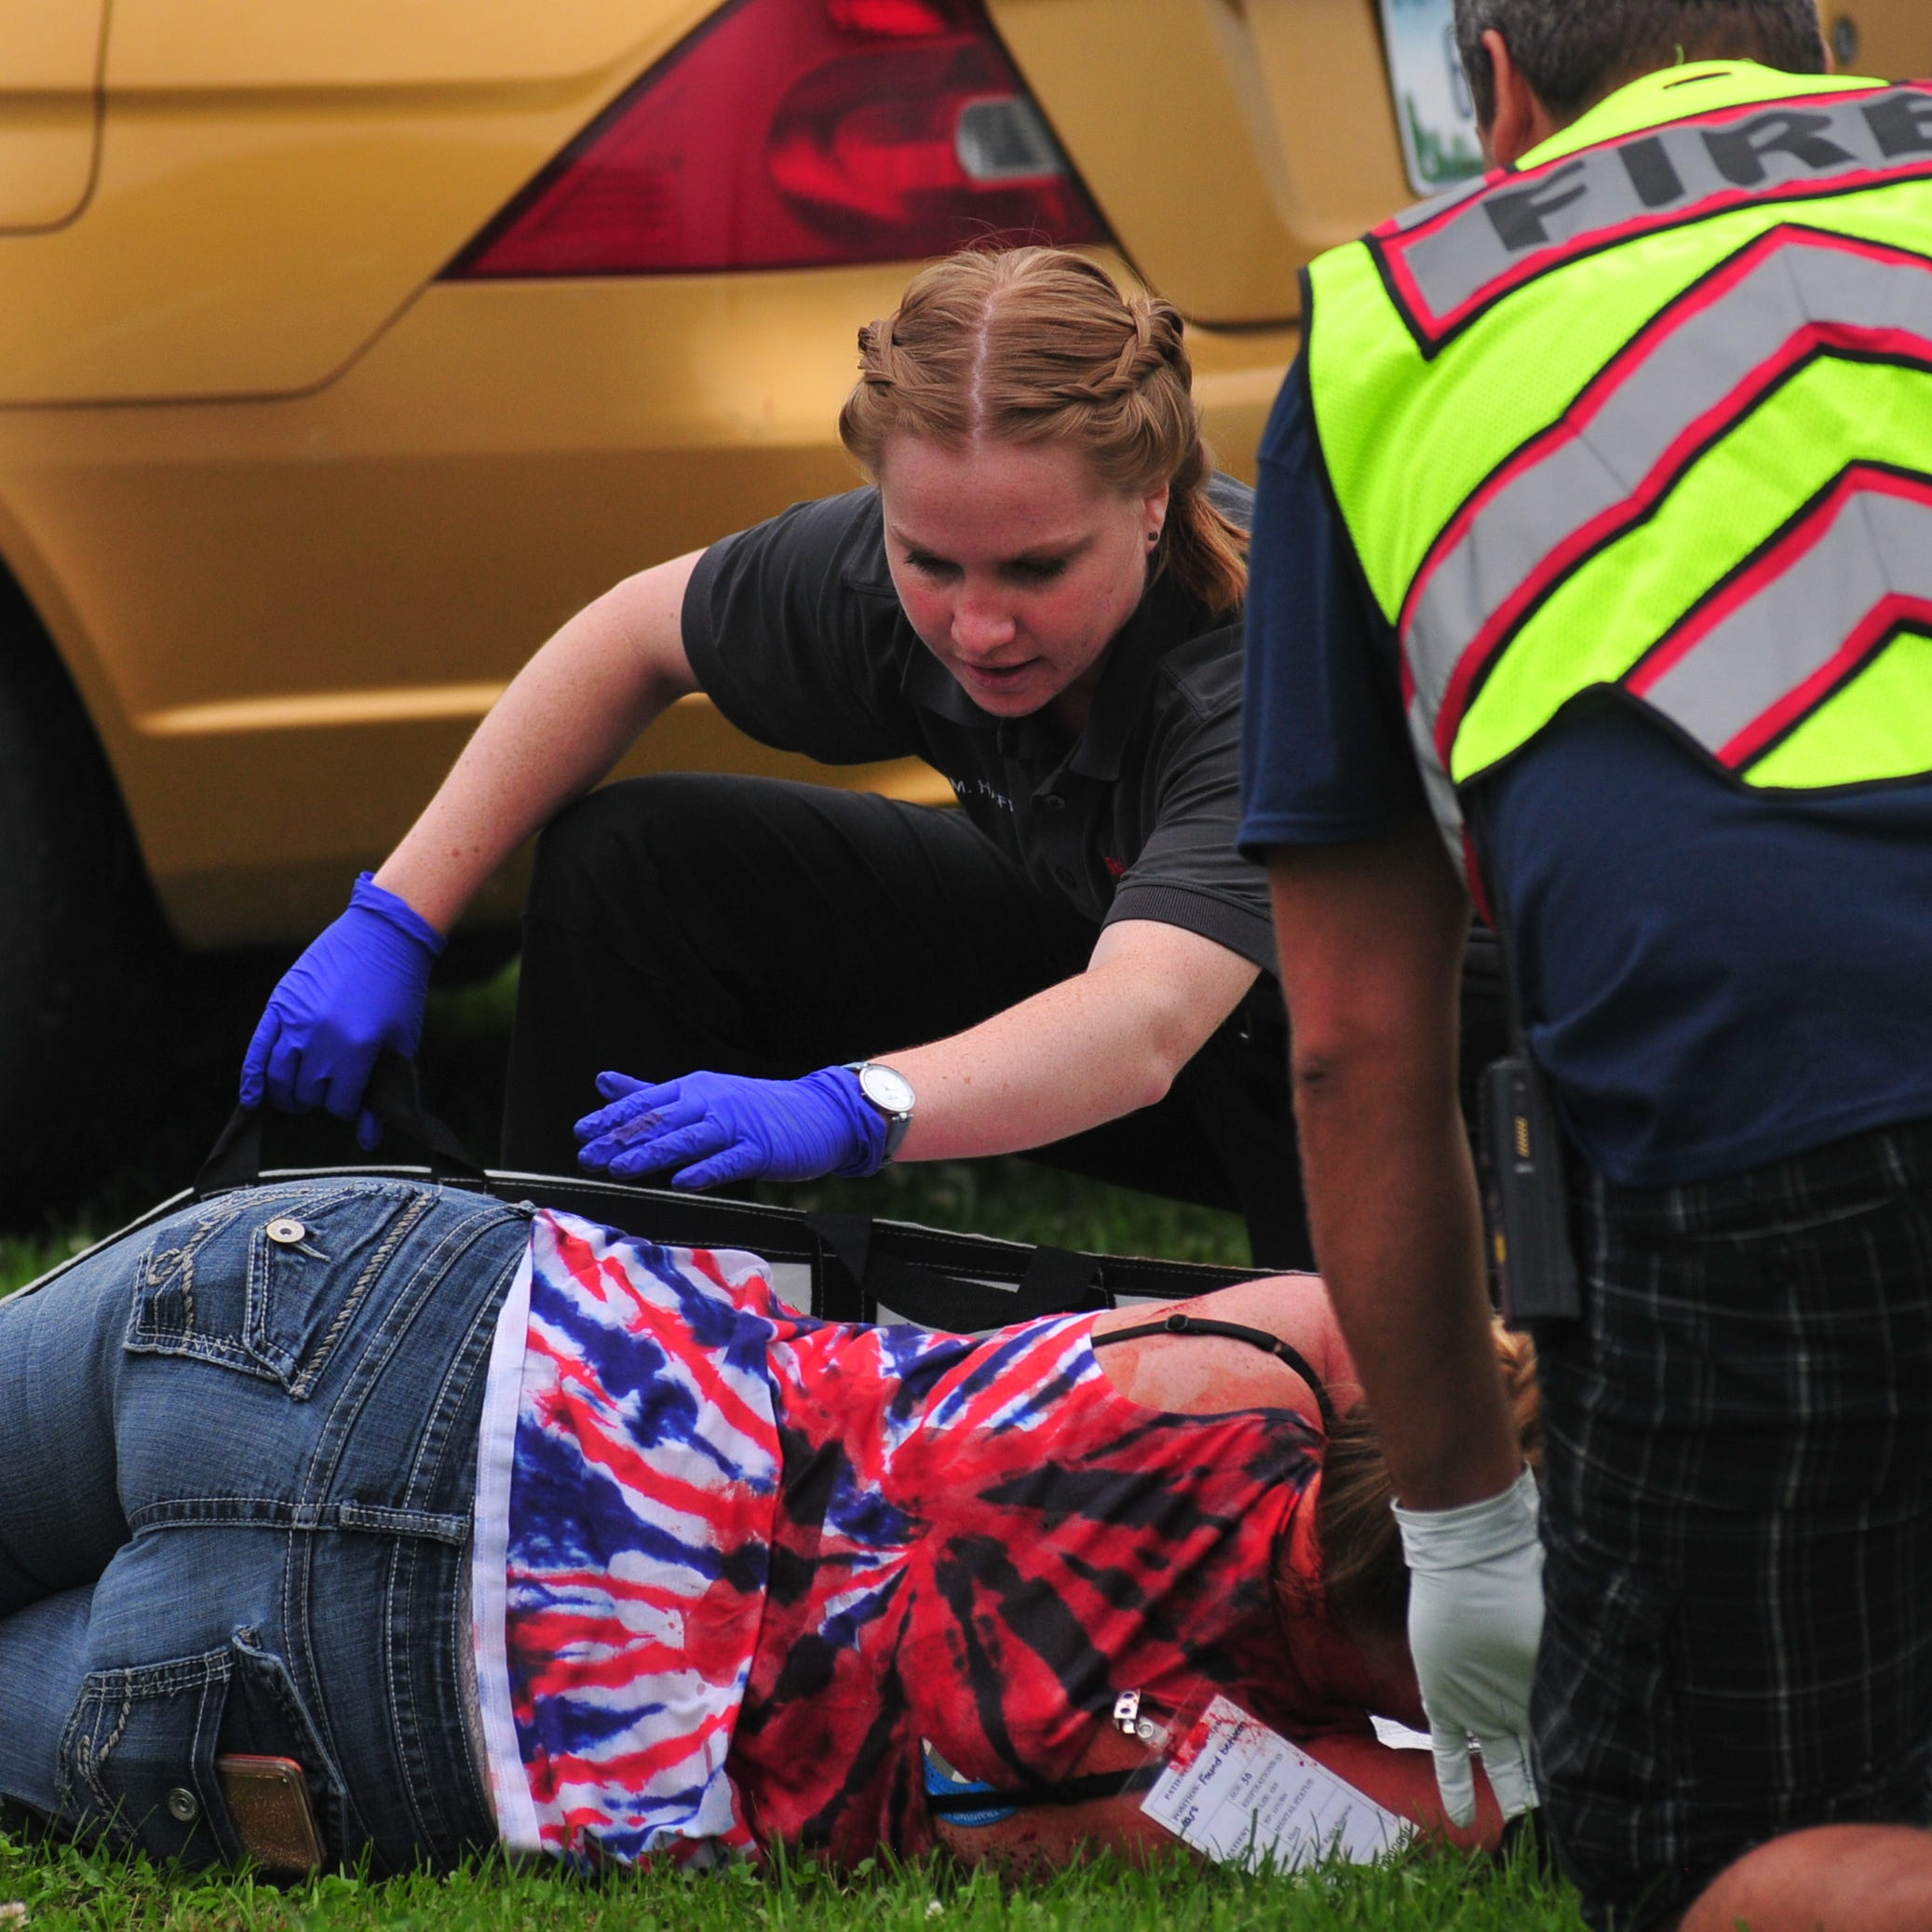 Fake wounds, real screams create chaotic active shooter training scenario